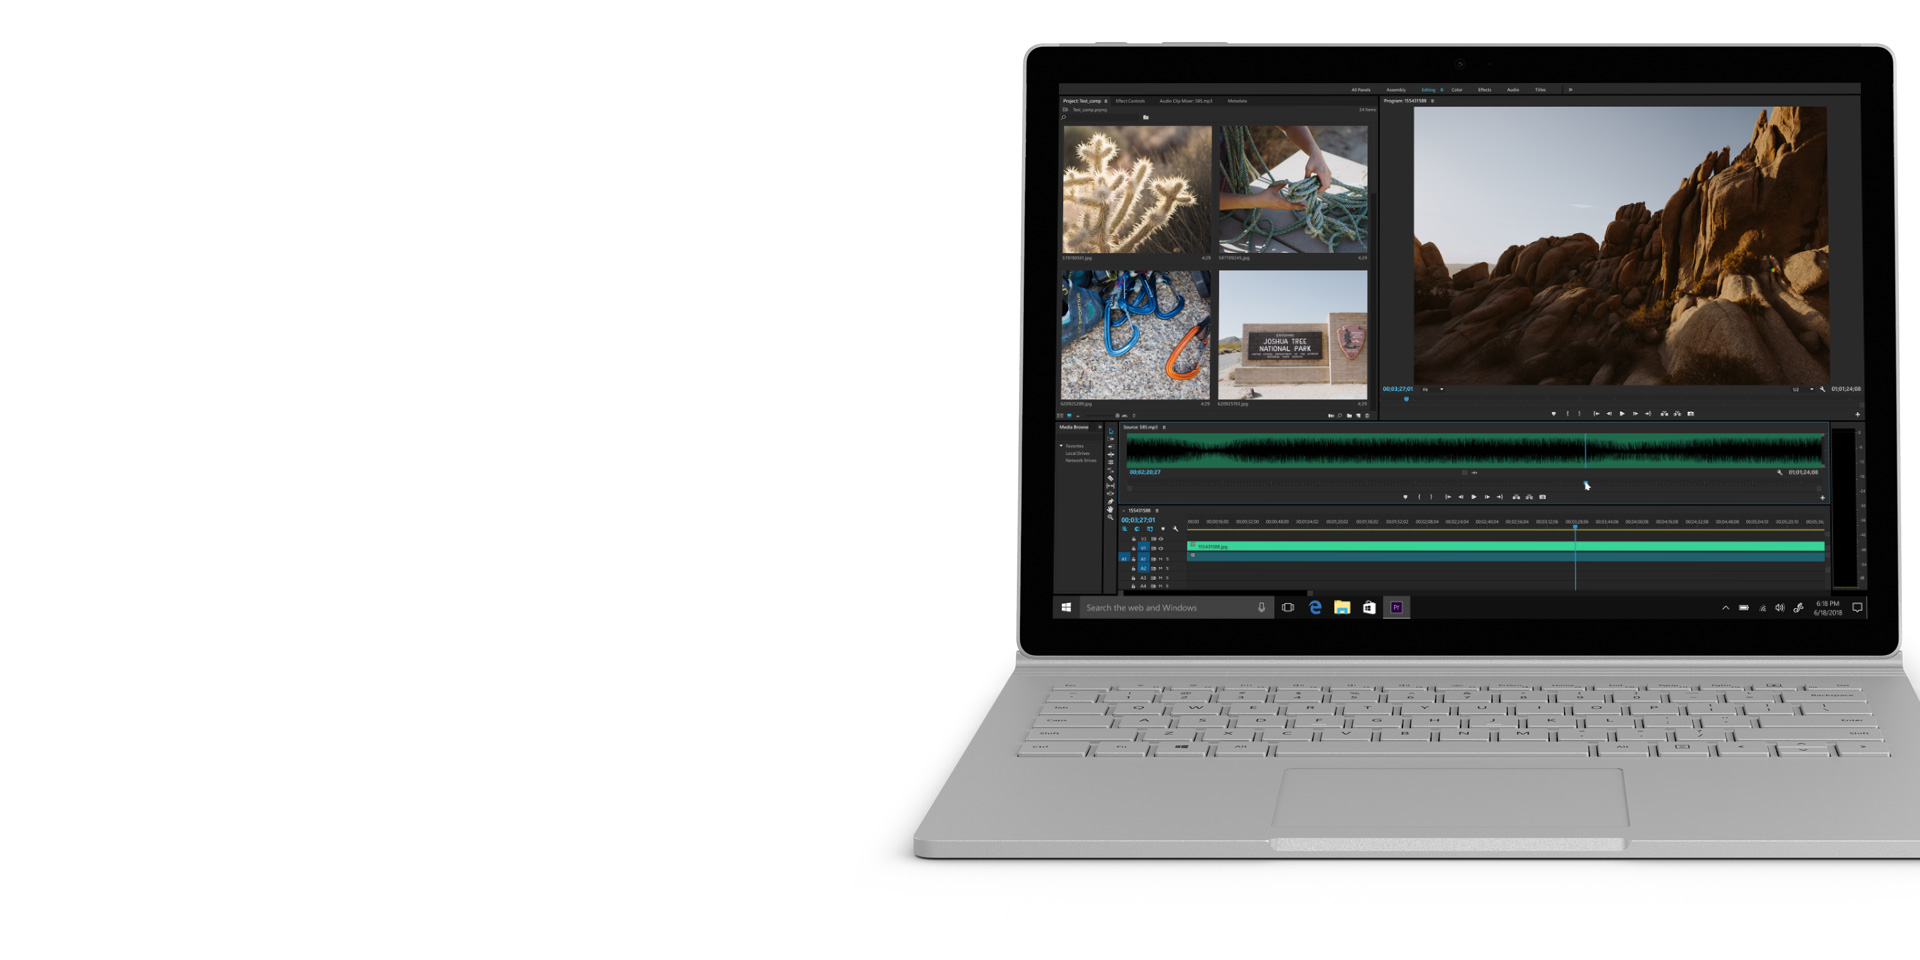 Adobe Premiere Pro on a Surface Book 2 display